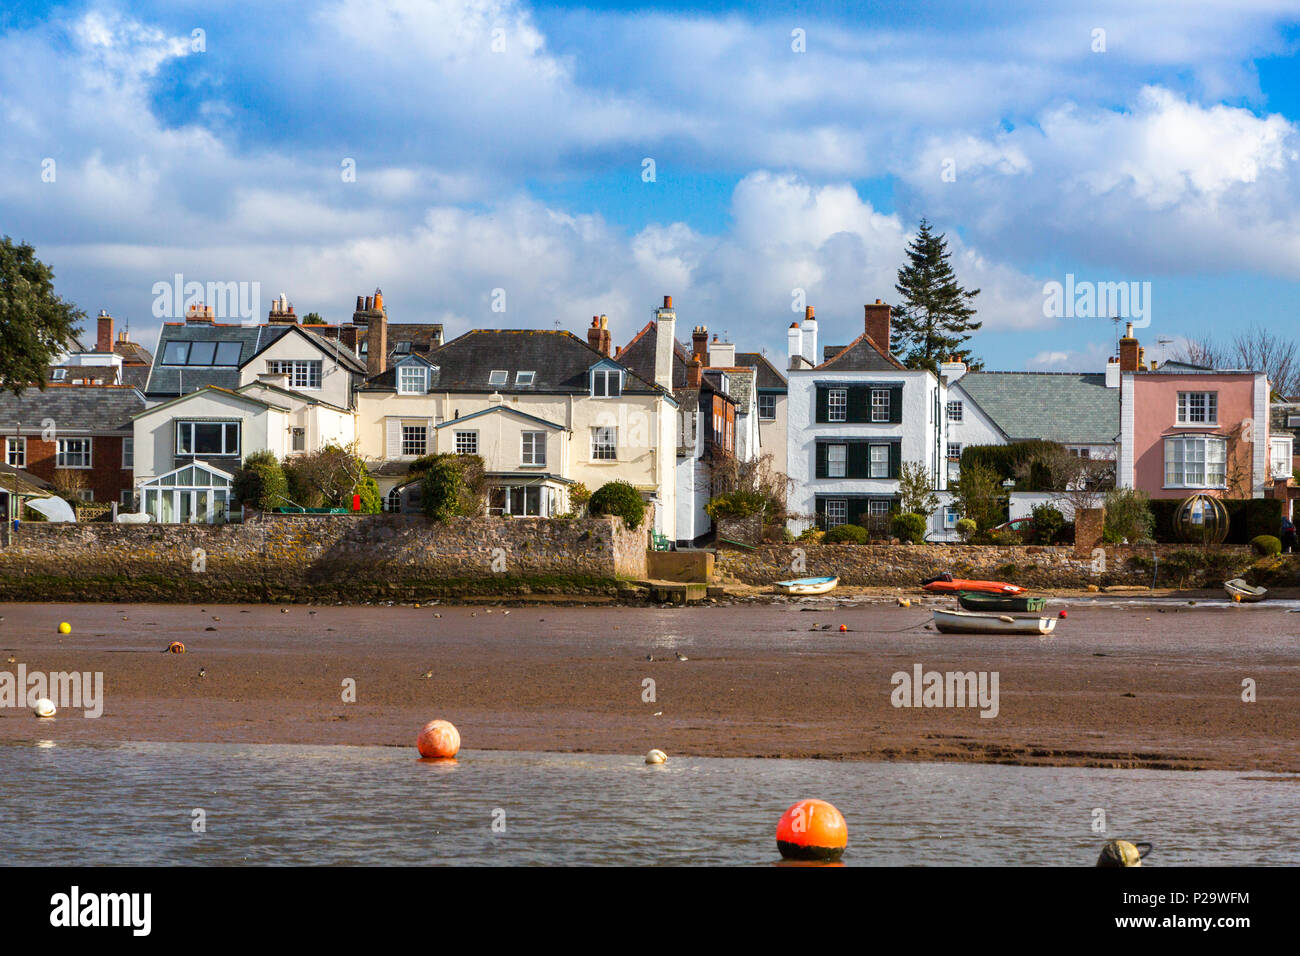 Waterfront properties above the mudflats of the River Exe at Topsham, Devon, England, UK - Stock Image